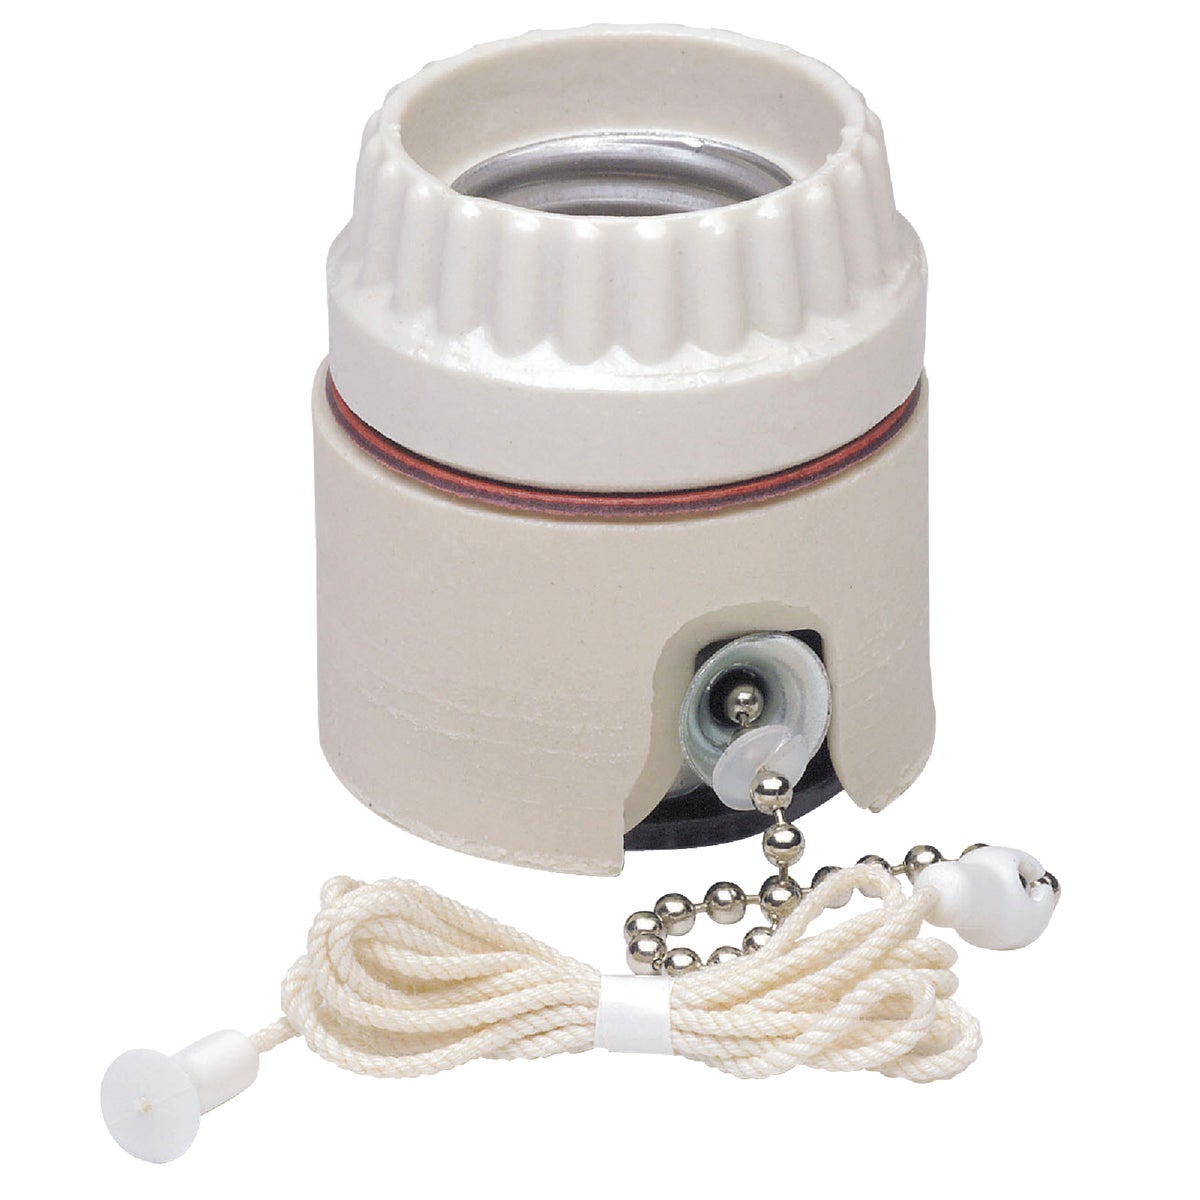 PORCELAIN LAMPHOLDER - 9814 by Leviton Mfg Co